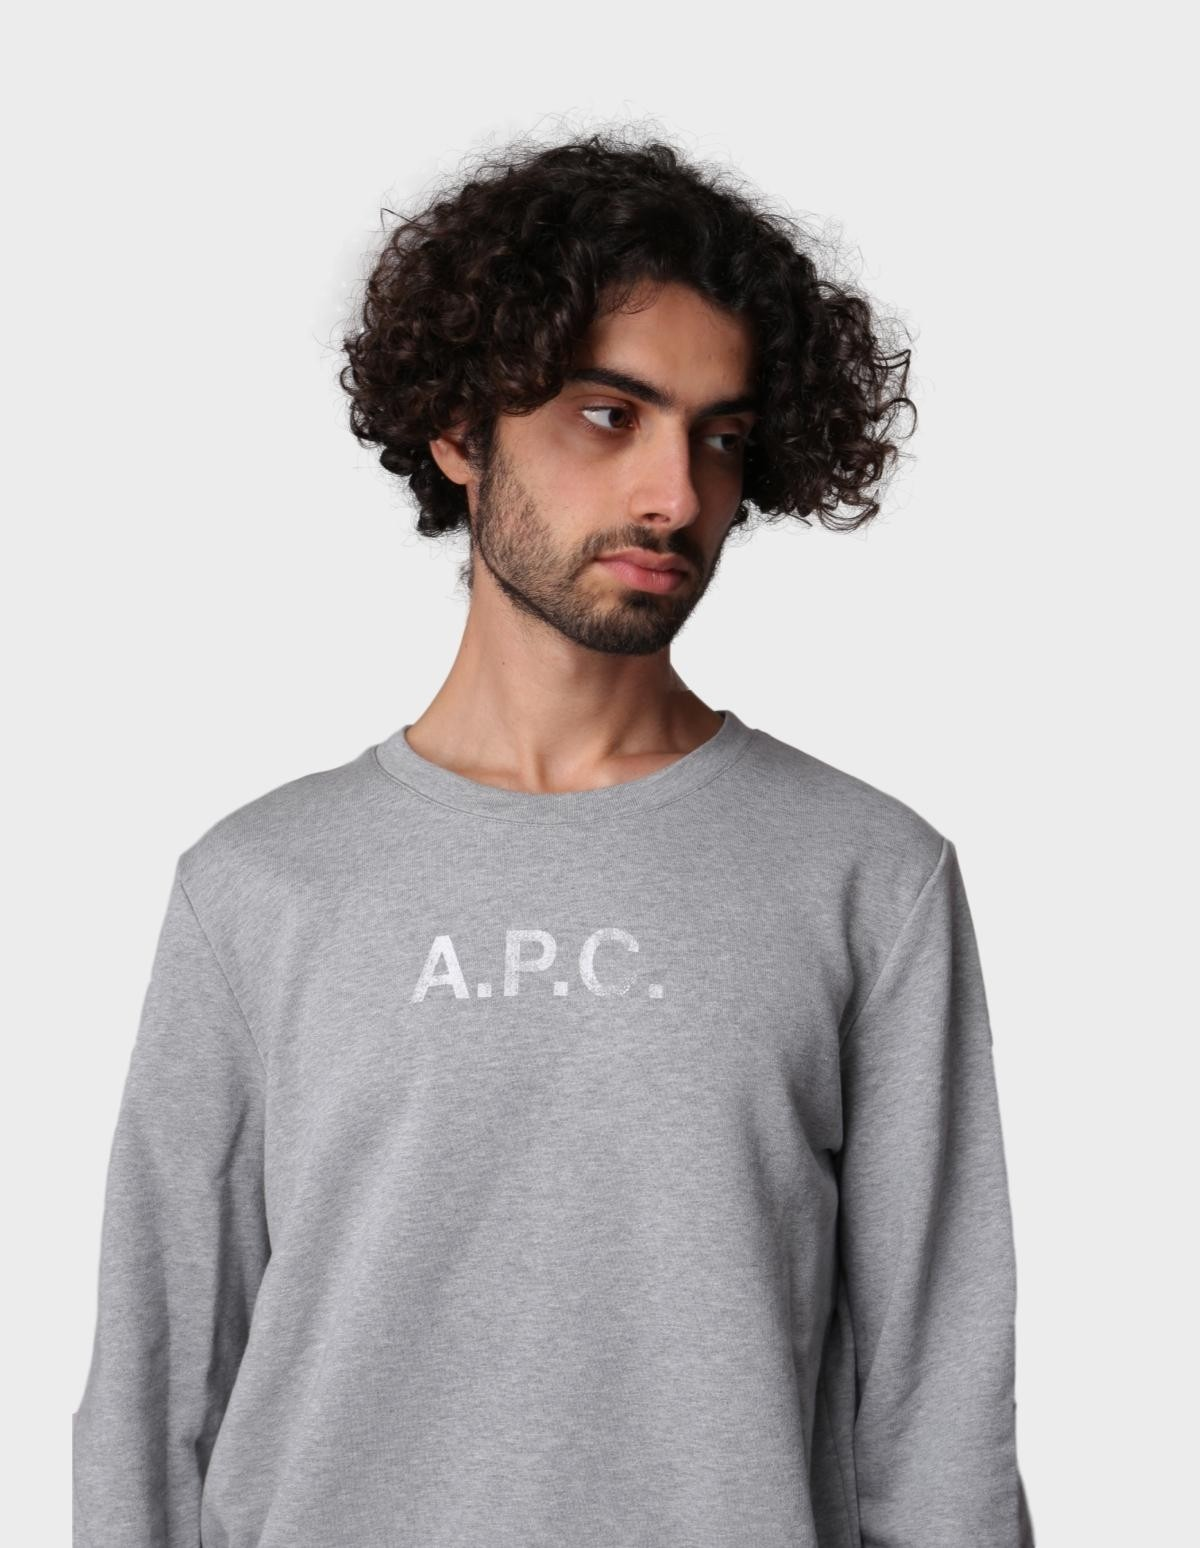 A.P.C. Sweat Stamp H in Gris Chine